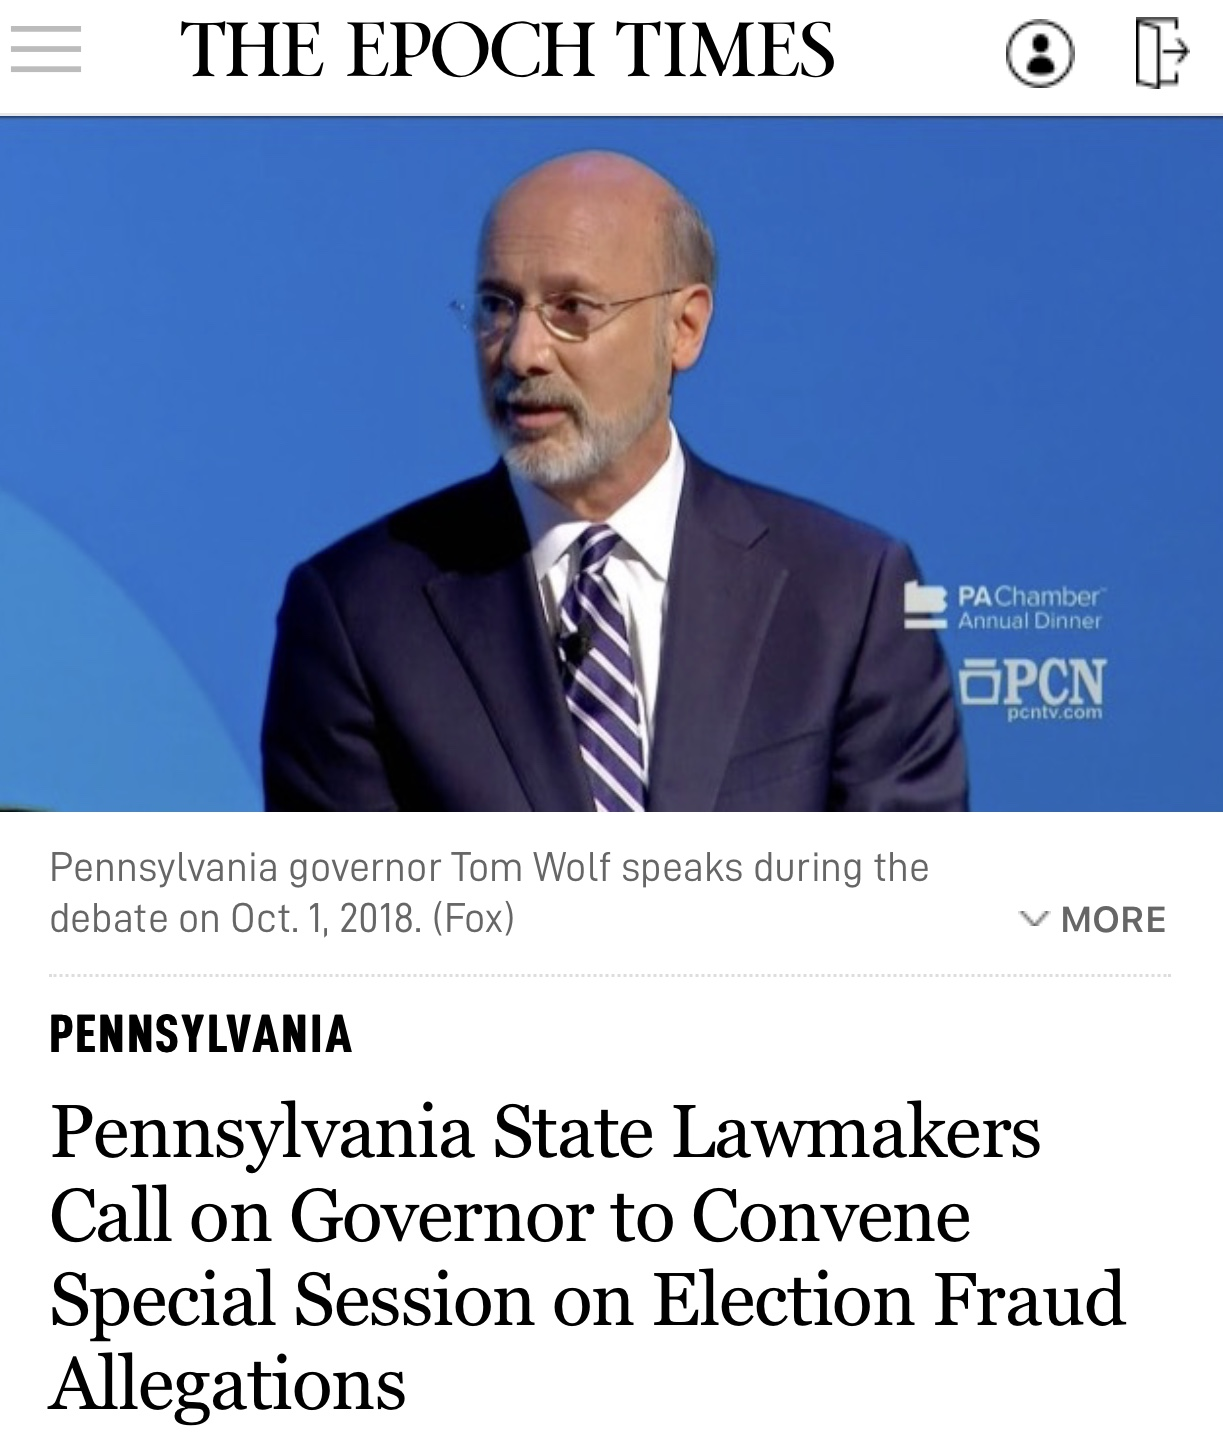 Breaking News Pennsylvania State Lawmakers Call on Governor to Convene Special Session on Election Fraud Allegations